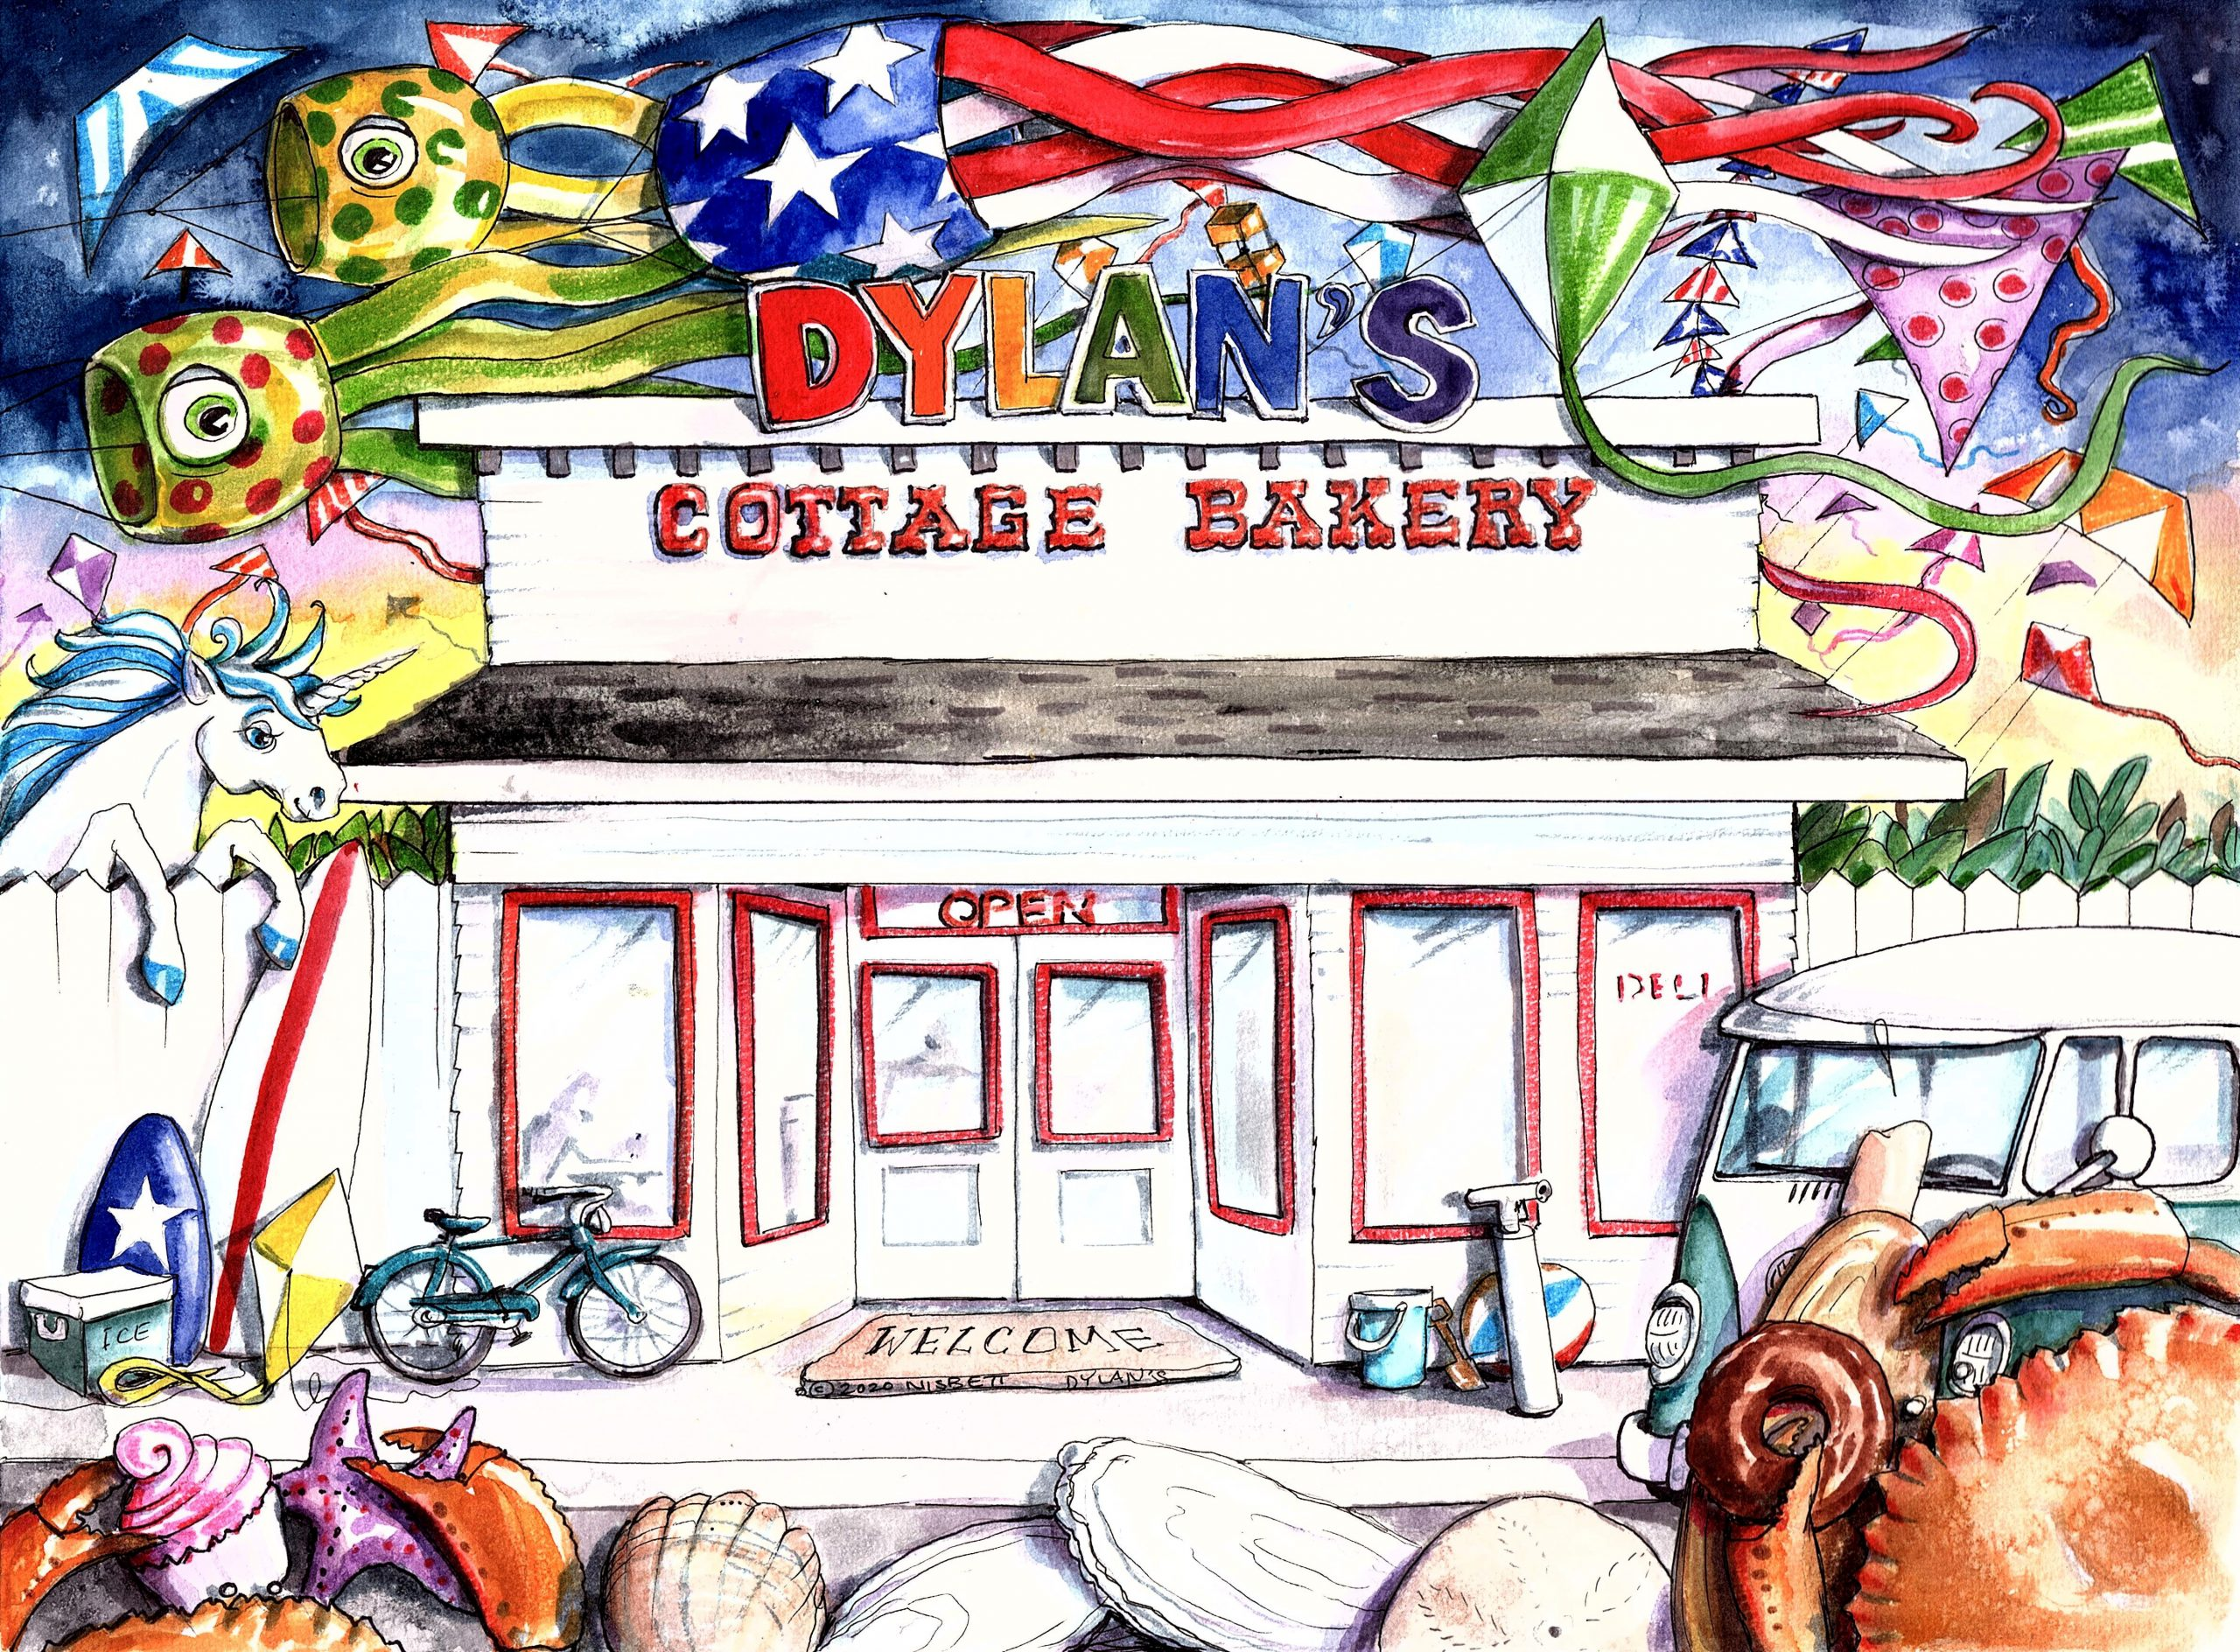 Dylan's Cottage Bakery